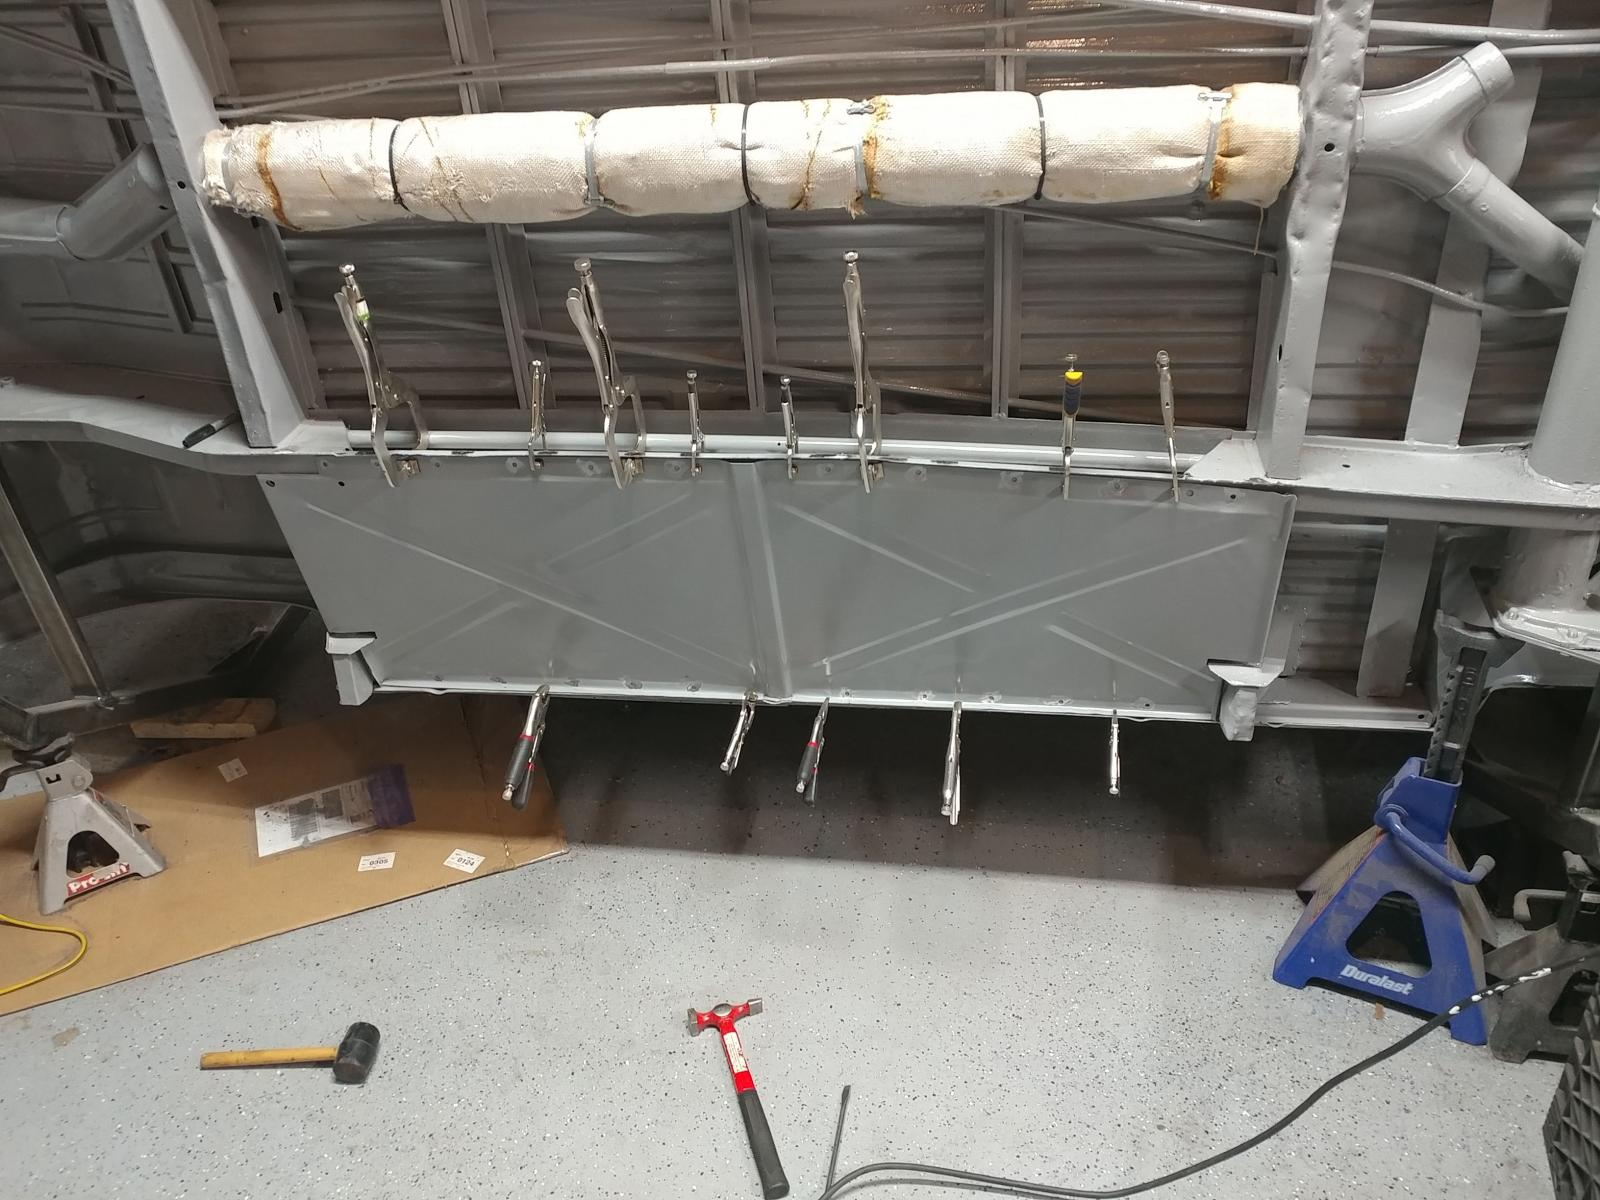 Installing belly pans